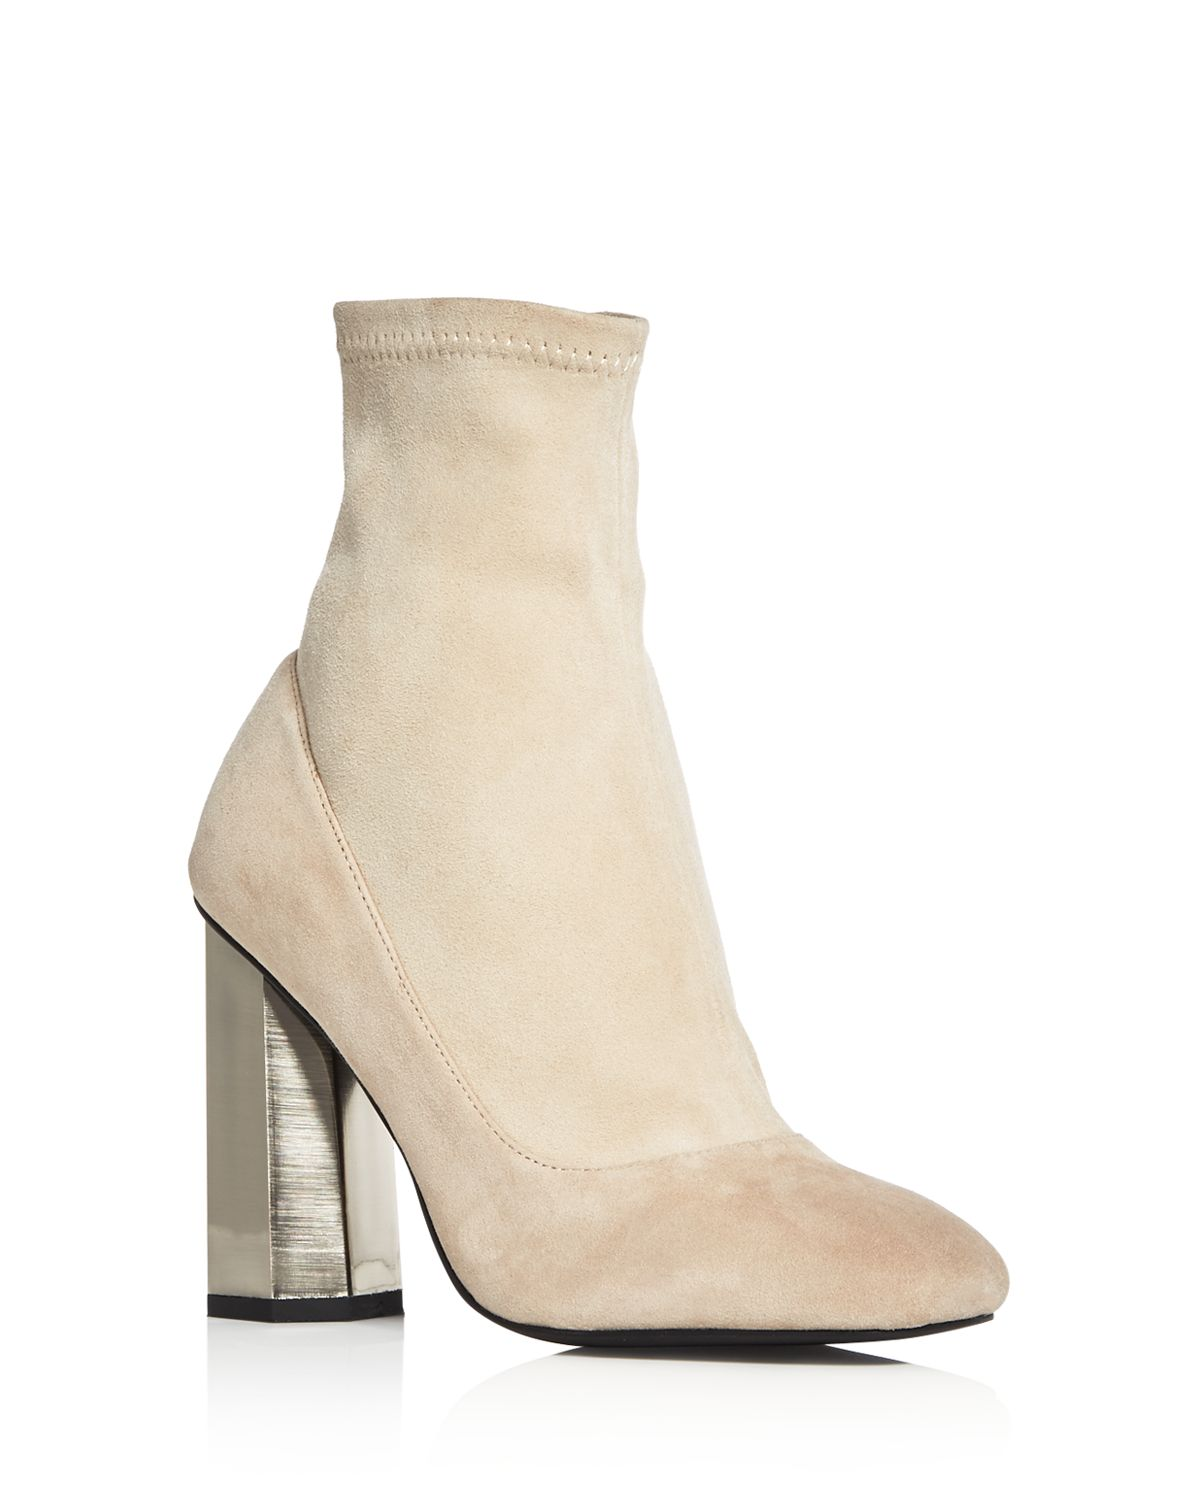 SENSO Women's Umar Suede High-Heel Booties